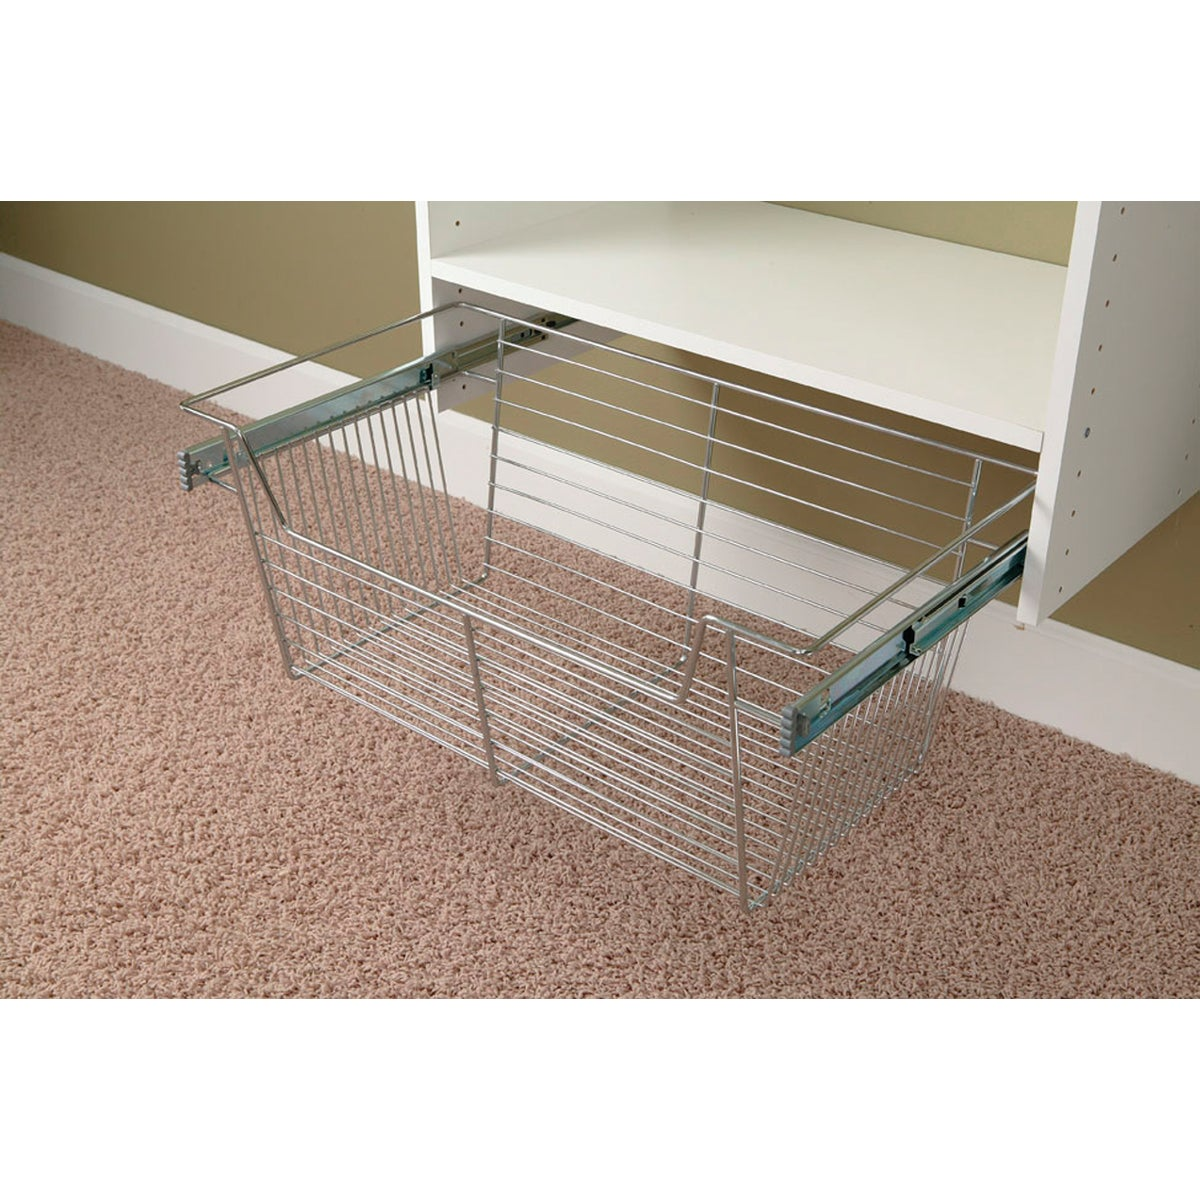 "11"" CHROME WIRE BASKET - 9211-CH by The Stow Company"